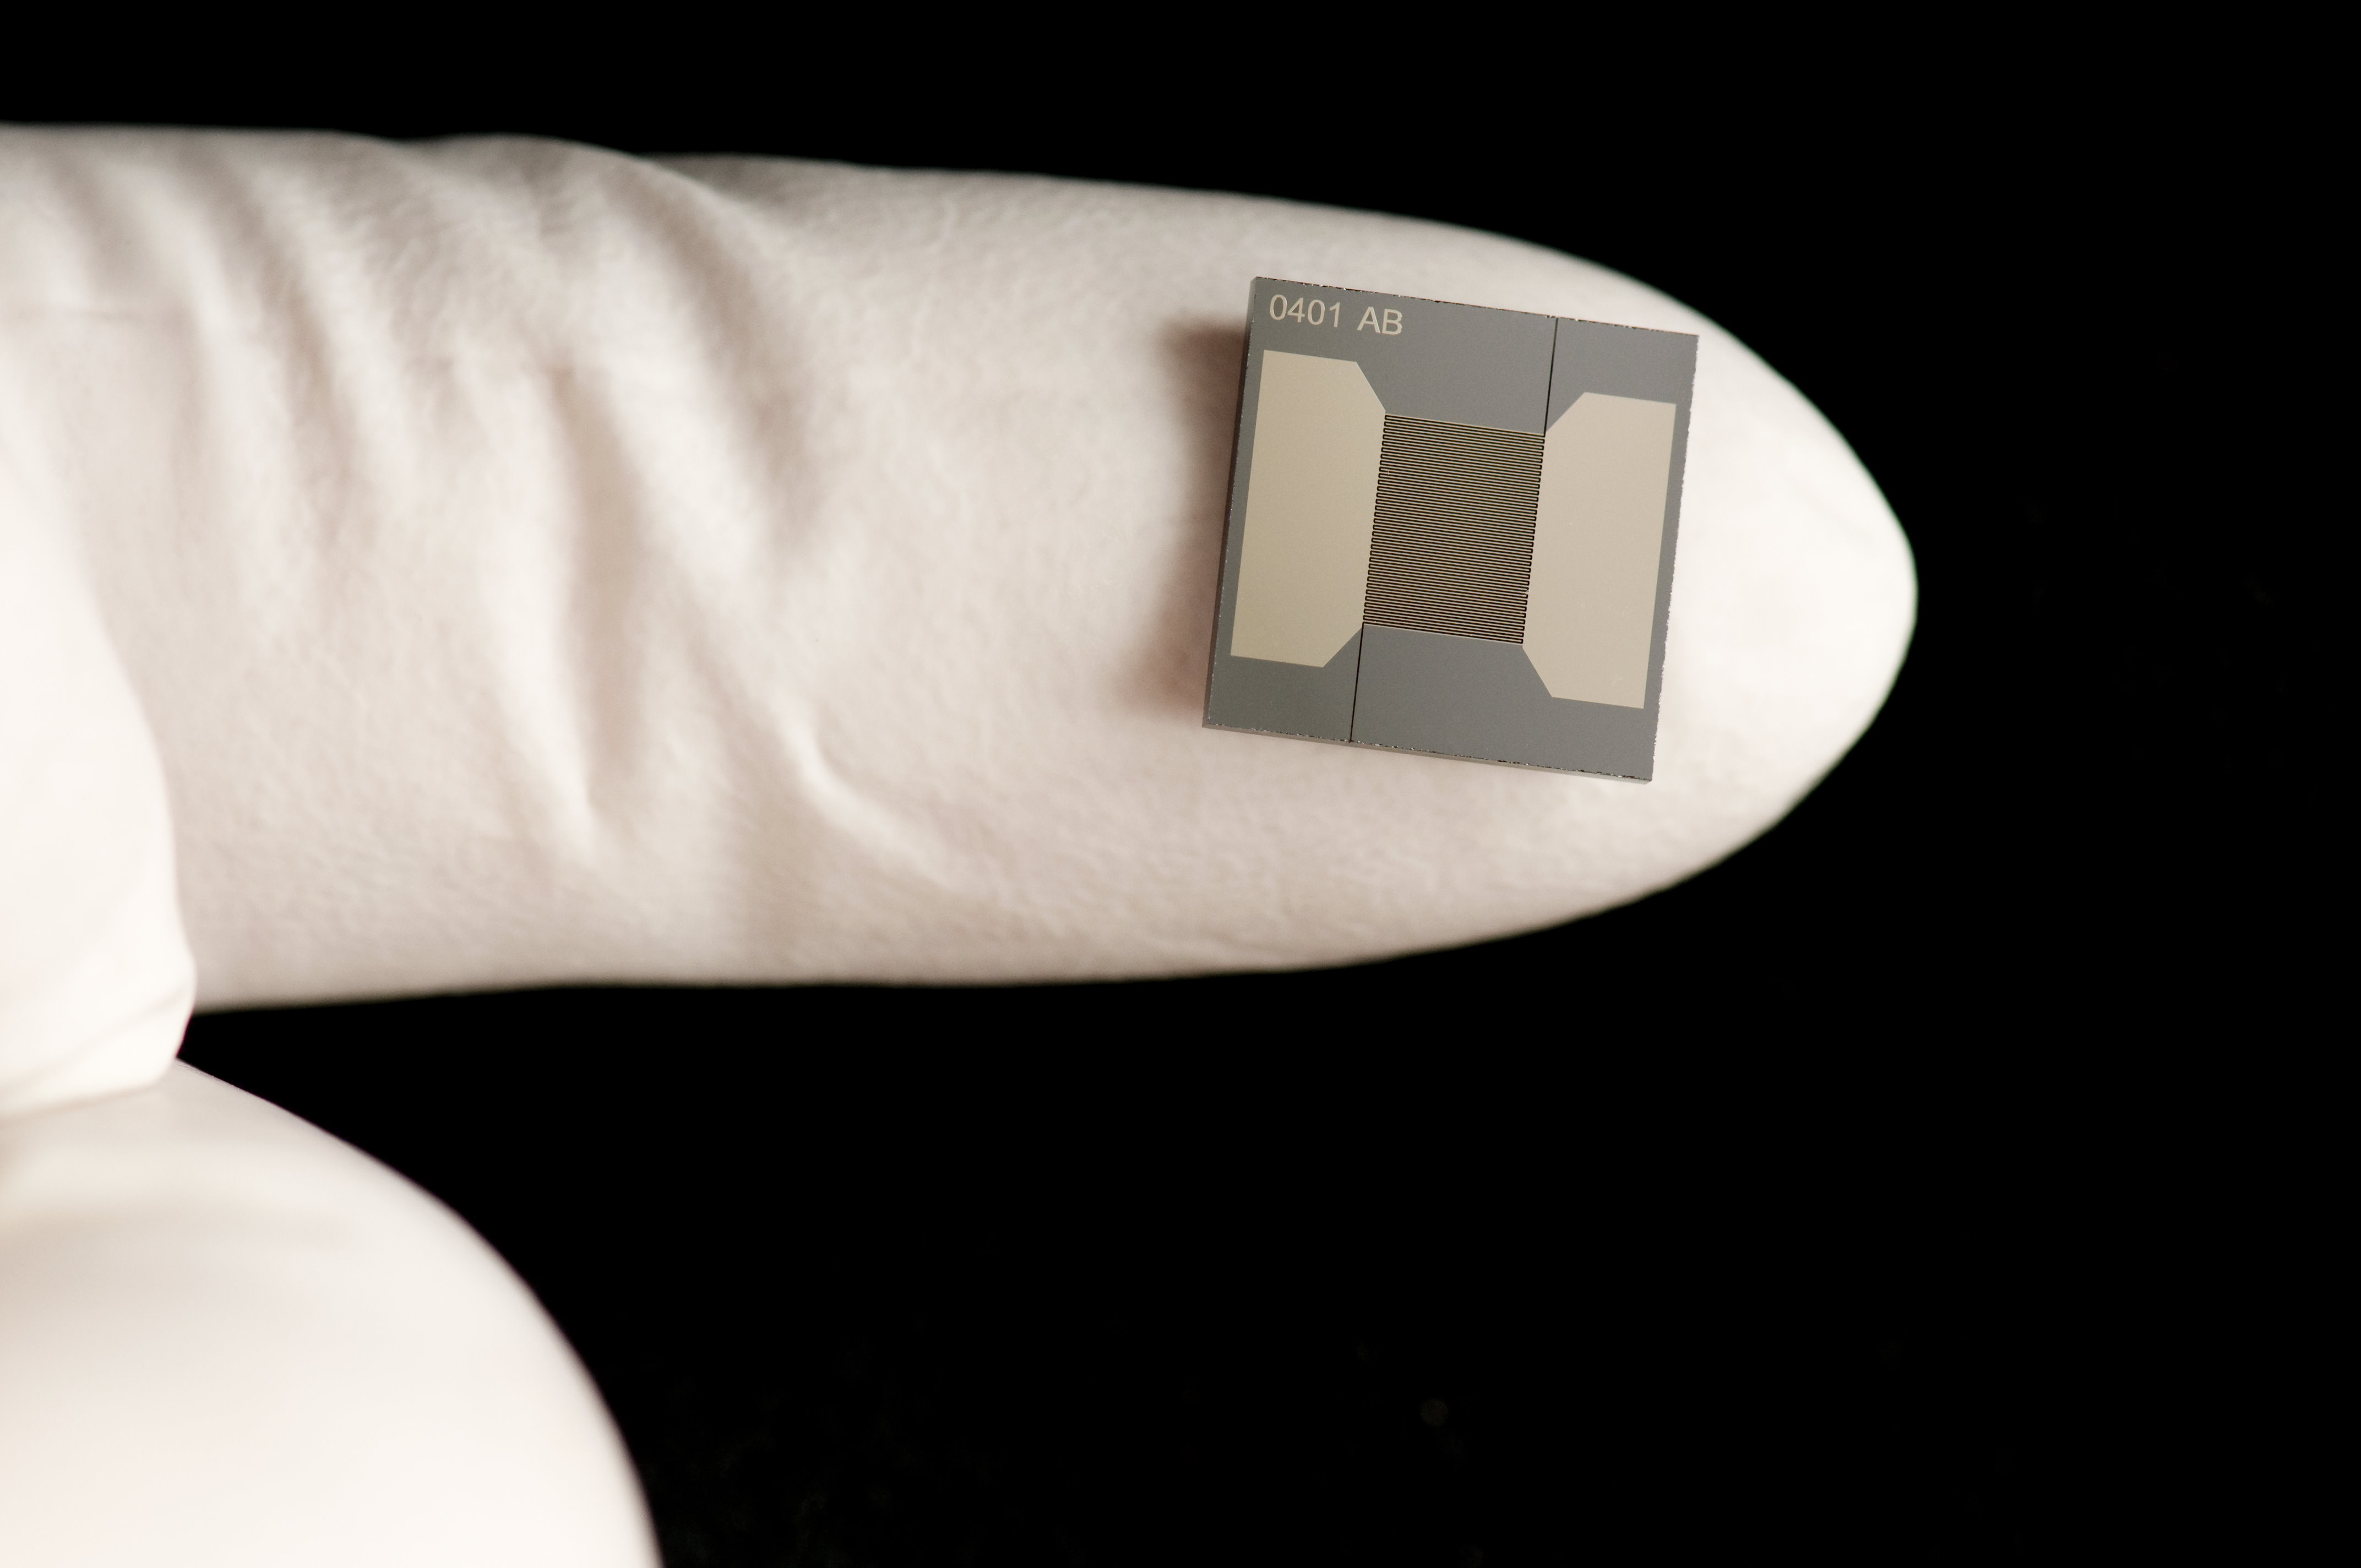 IMS Microchip shown on gloved finger